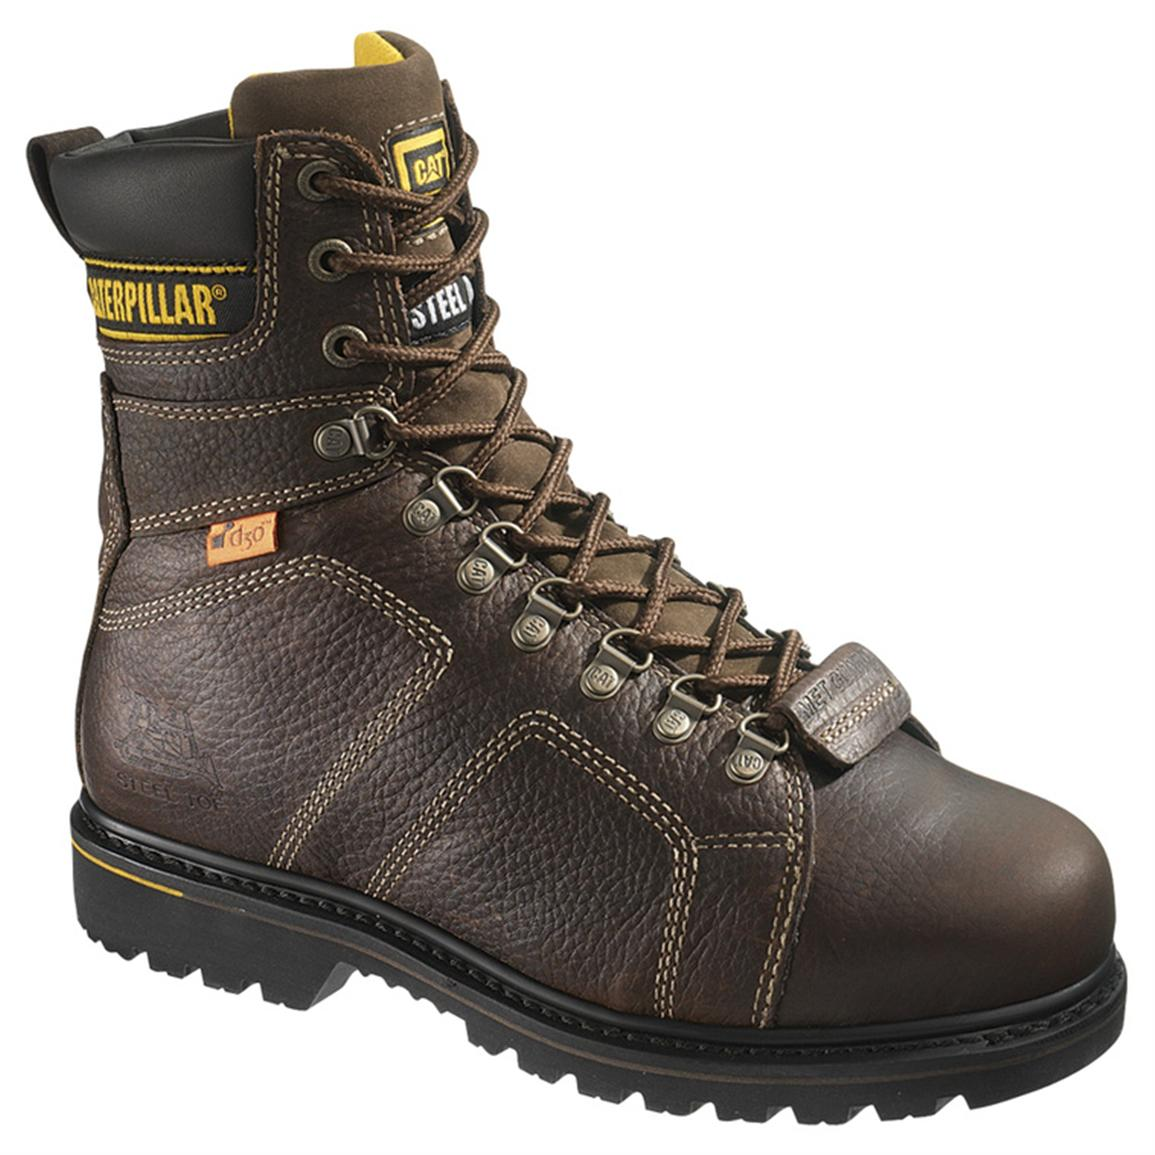 Men's CAT® 8 inch Silverton Guard Steel Toe Boots